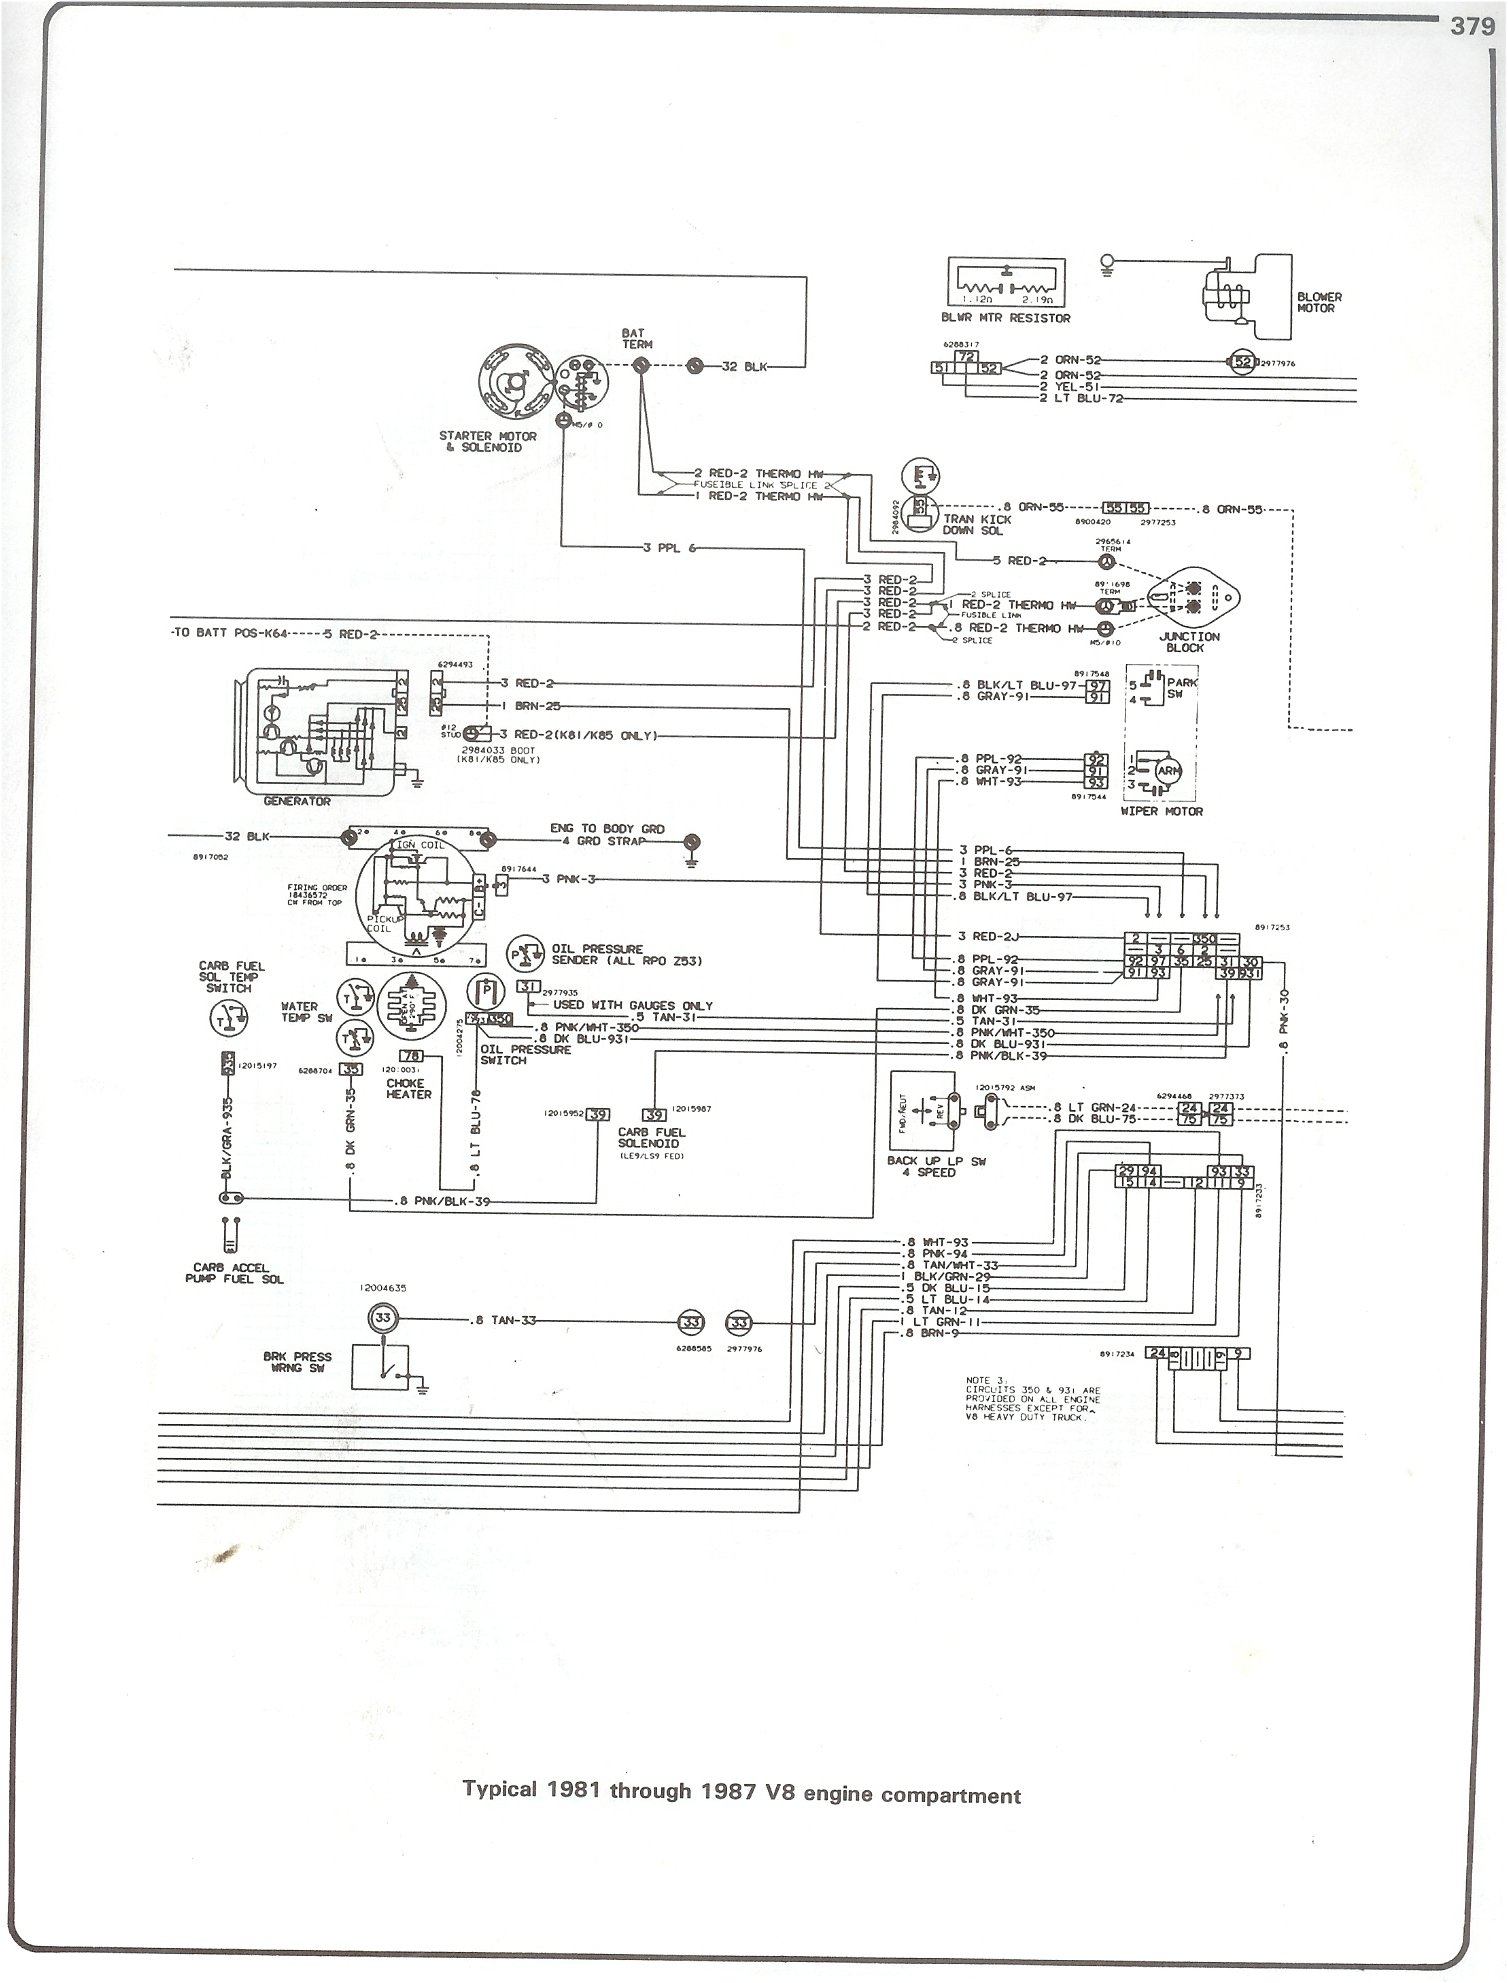 84 Chevrolet Wiring Diagram Silverado Free Download Diagrams Schematics 85 Chevy Truck V8 1981 1987 K10